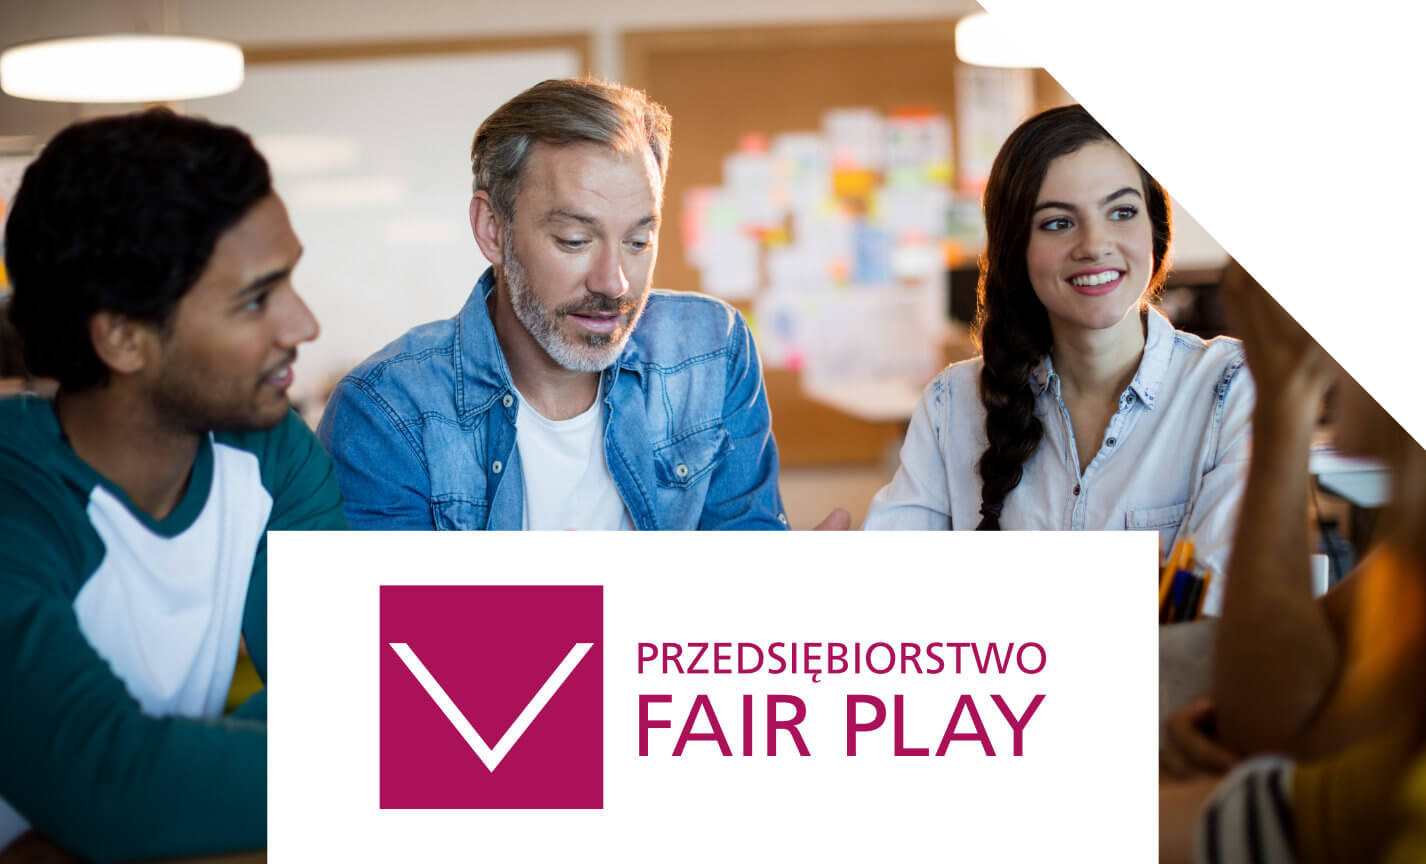 IT.integro Participating Business Fair Play Program